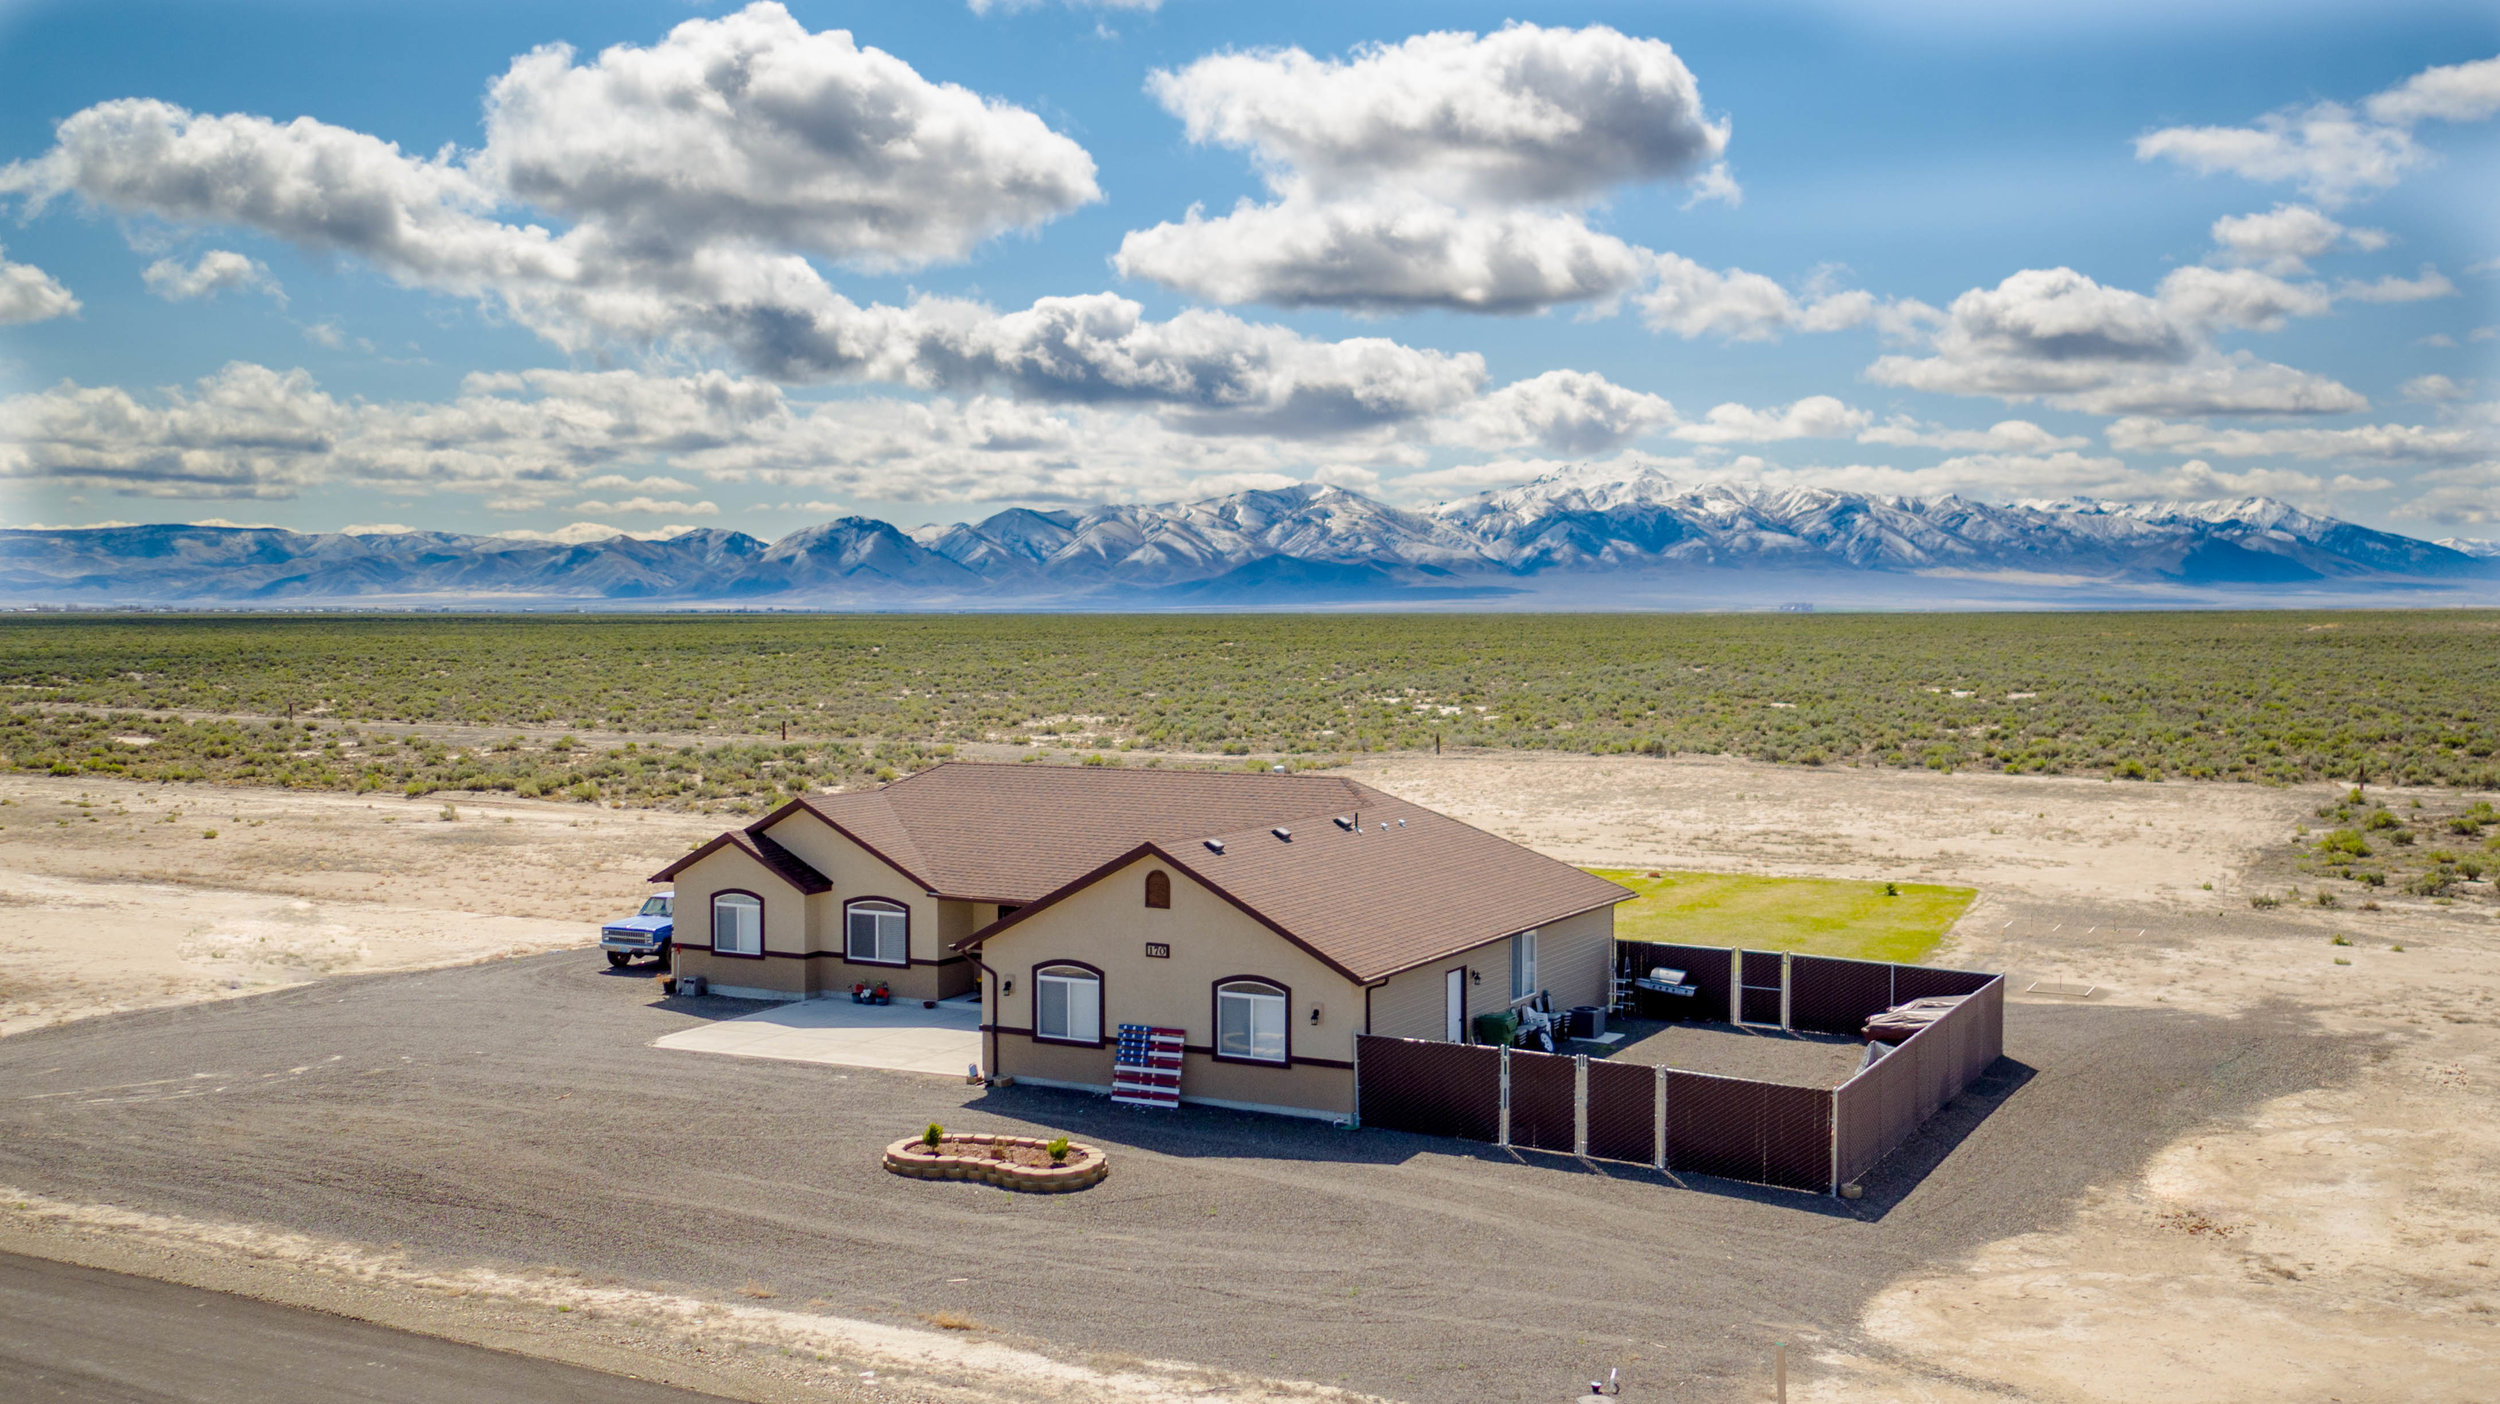 Aerial mapping, FAA licensed remote pilot, drone photography, real estate photographer, professional drone pilot, Nevada, quadcopter pilot, aerial photography,